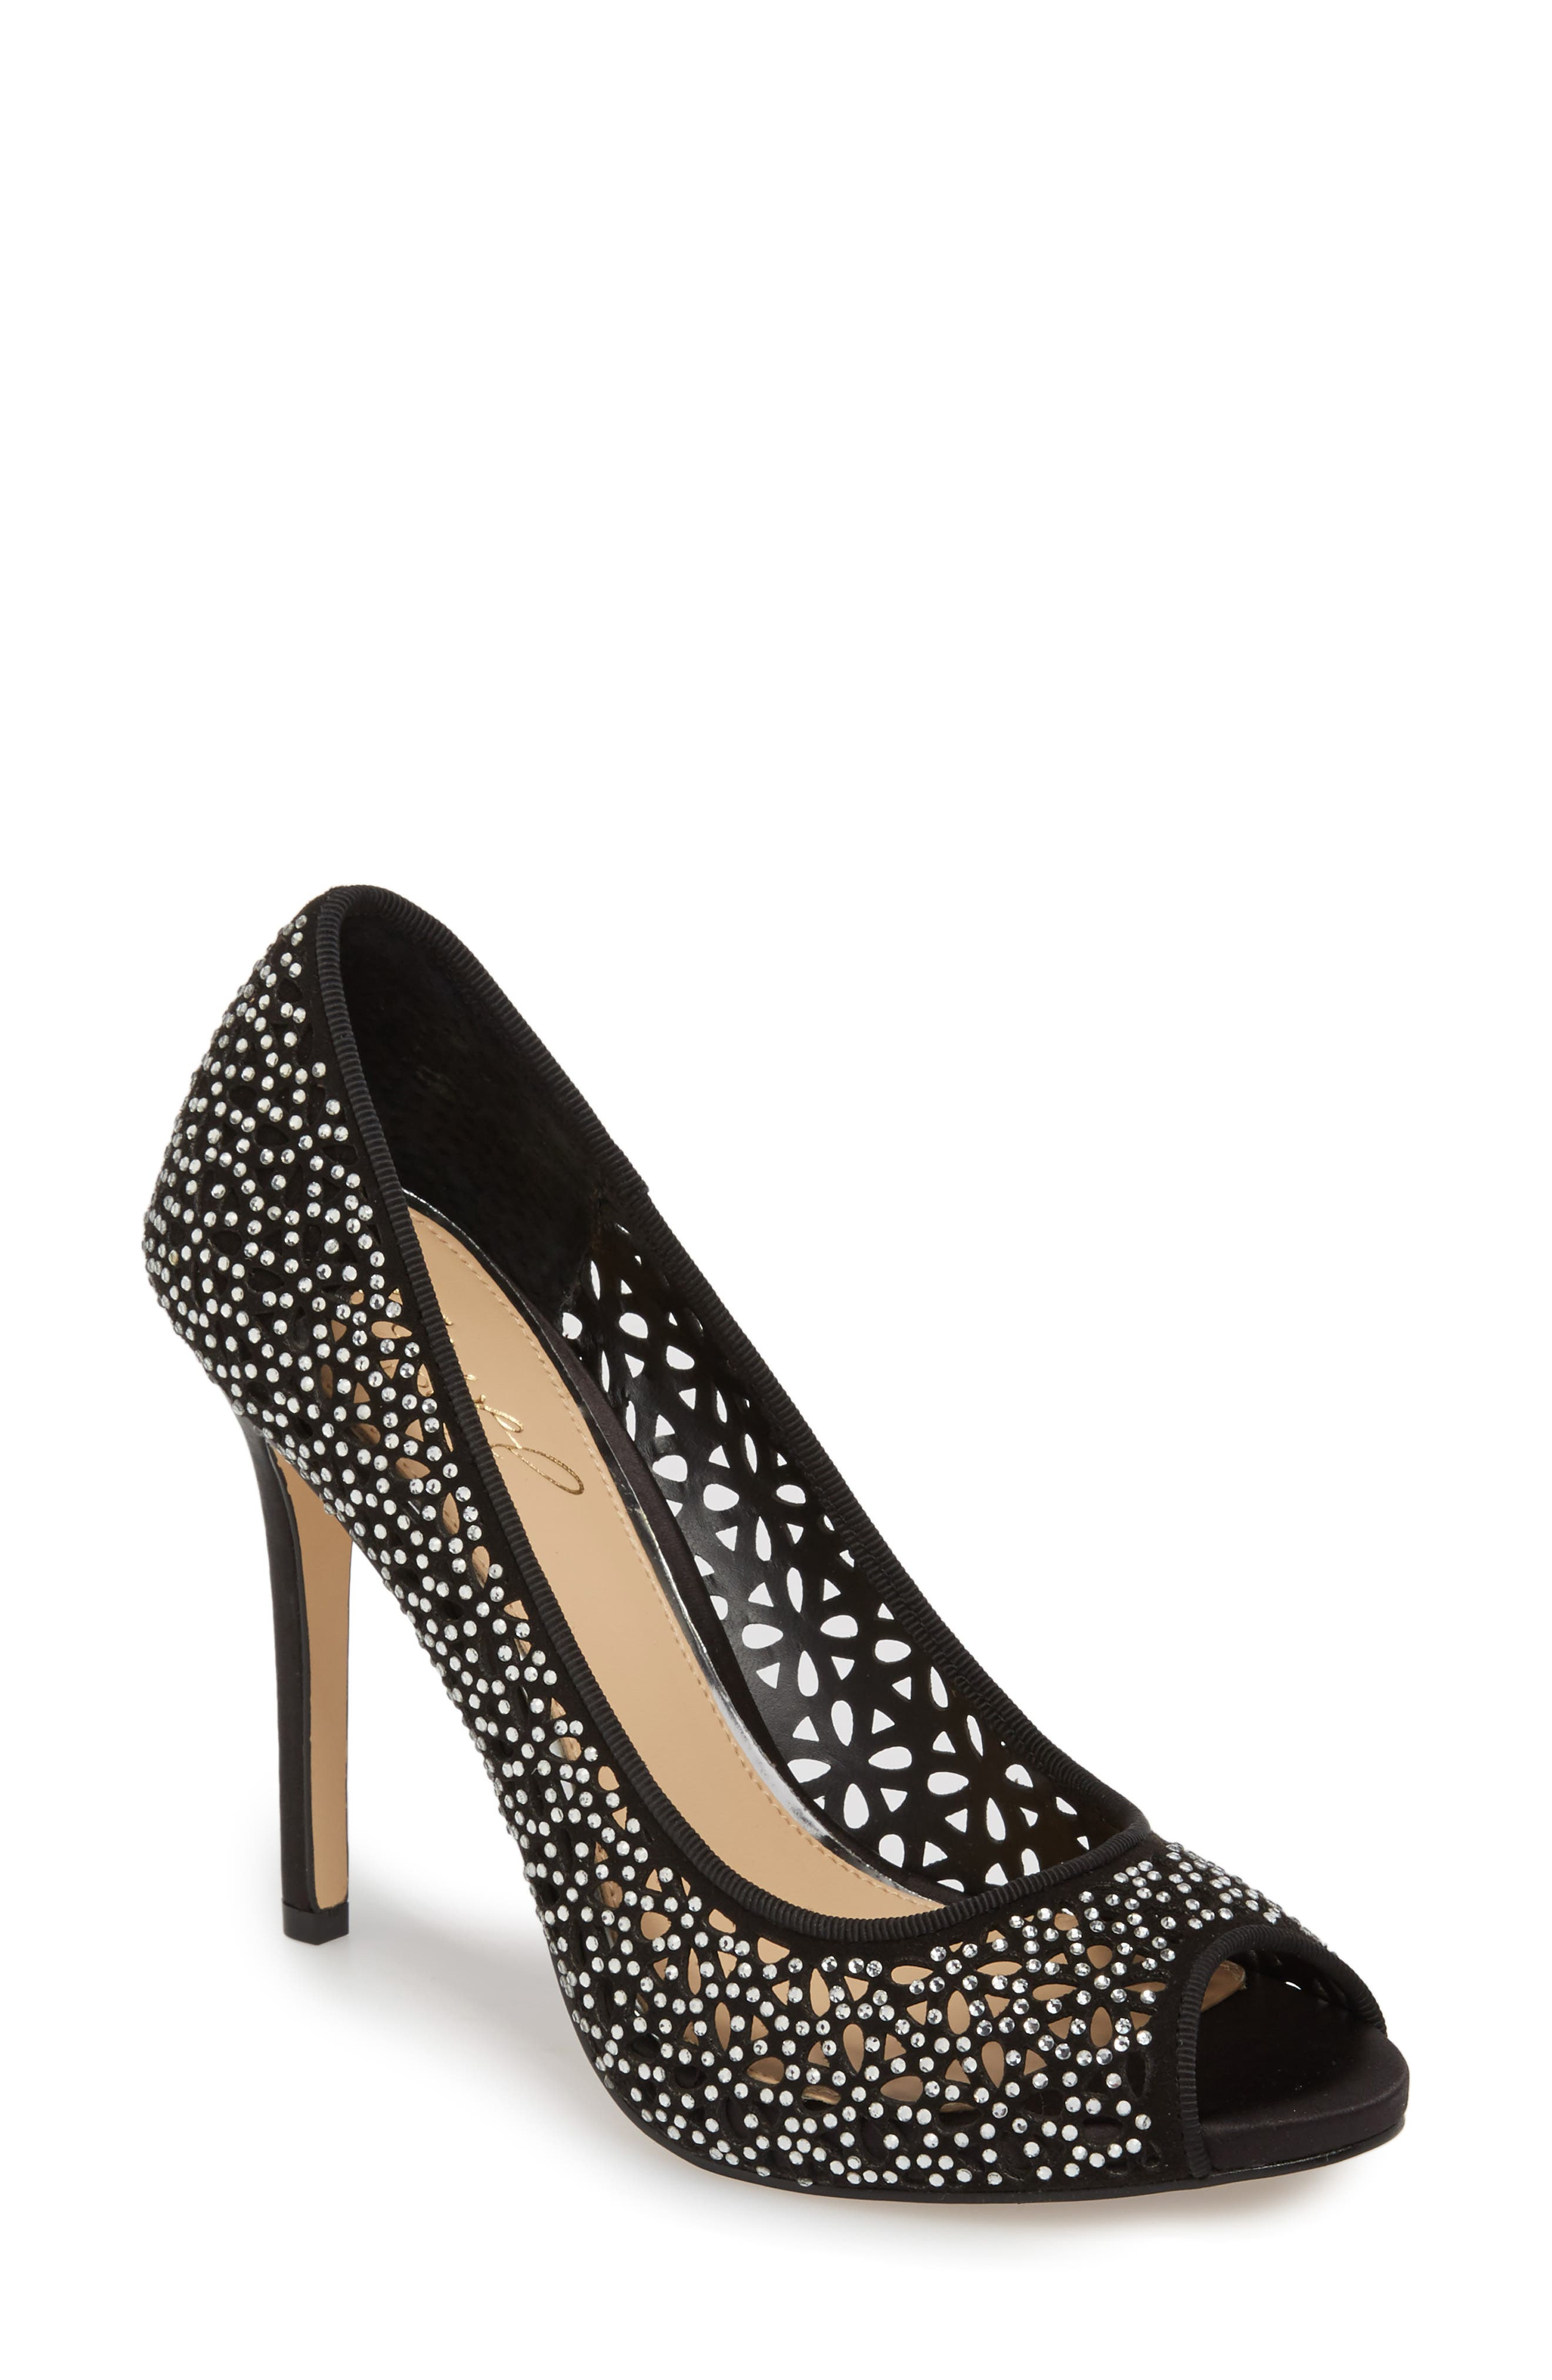 Jewel Badgley Mischka Tammi Peep Toe Pump (Women)